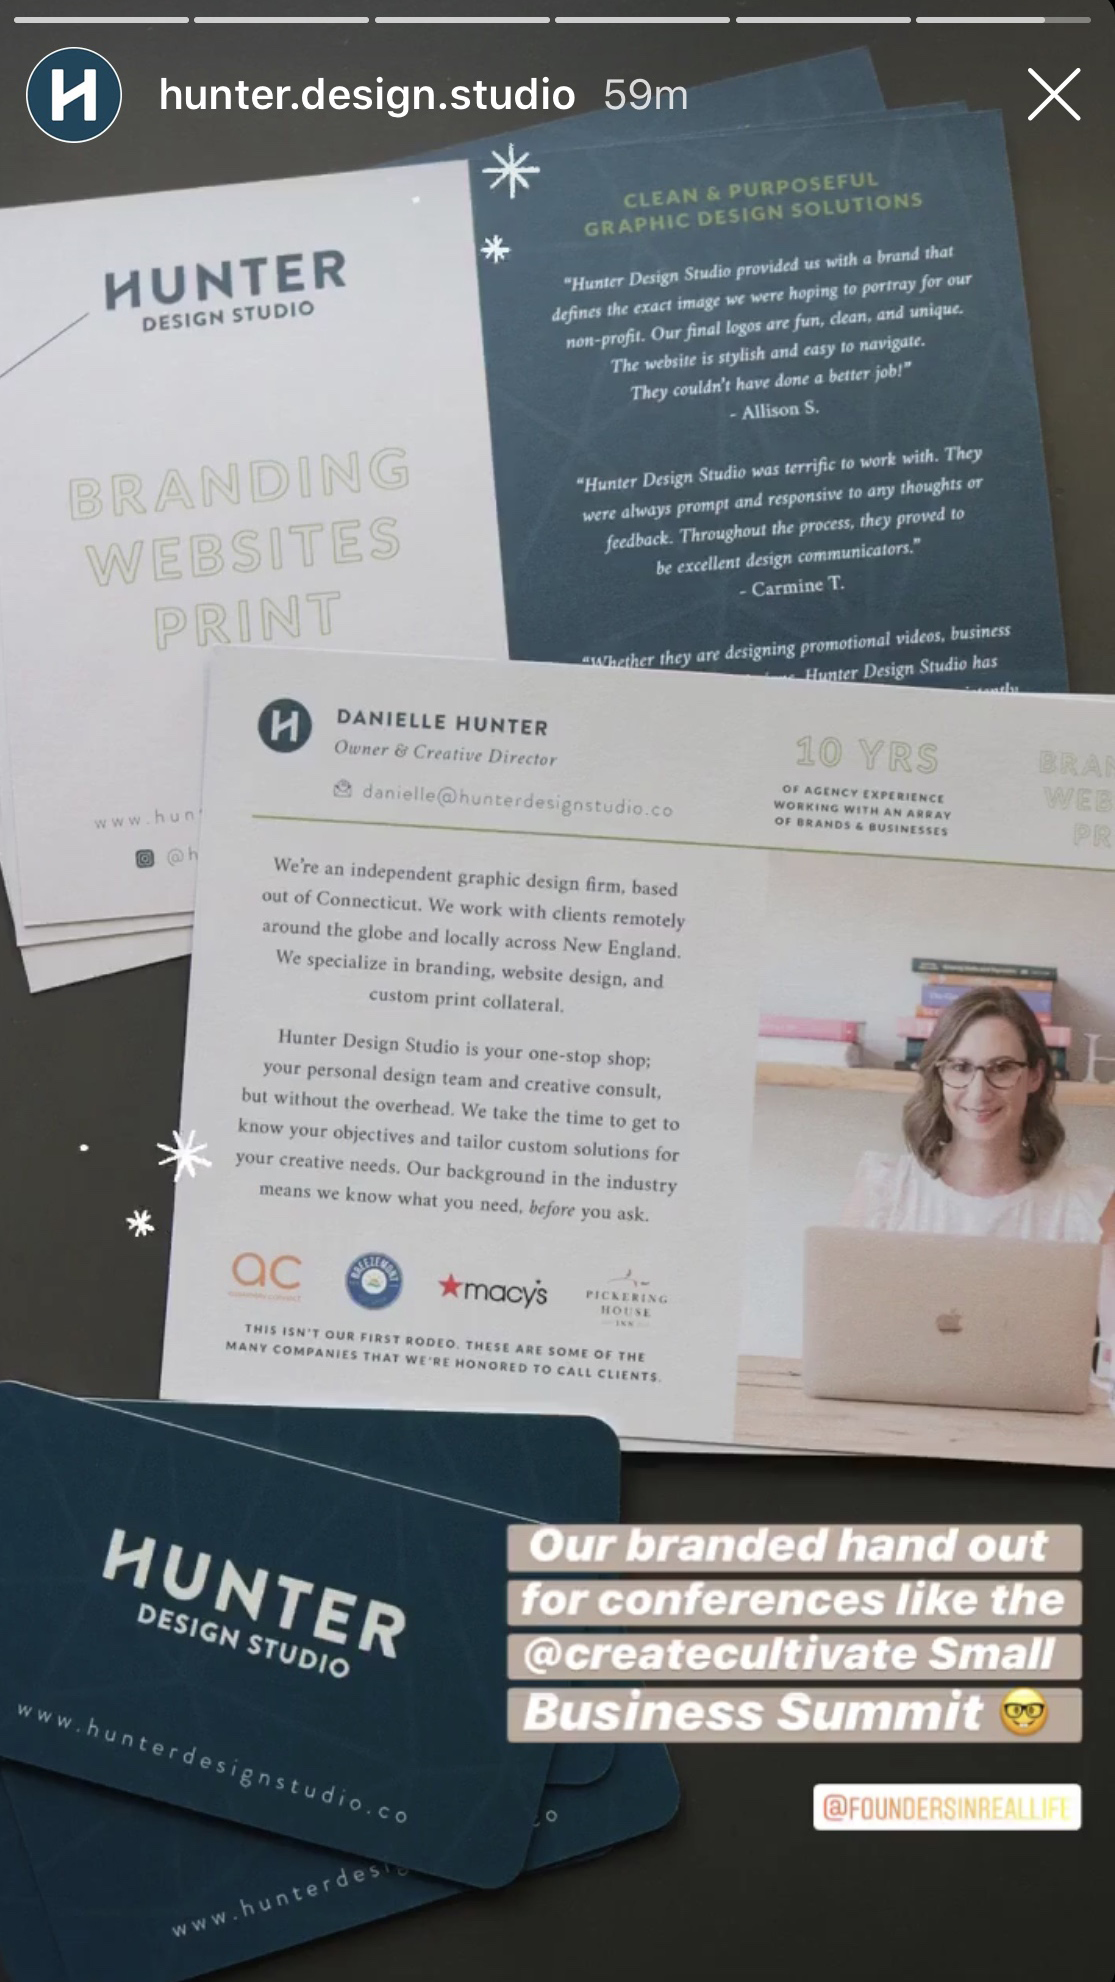 printed marketing materials using brand photography shot by jamie bannon photography.